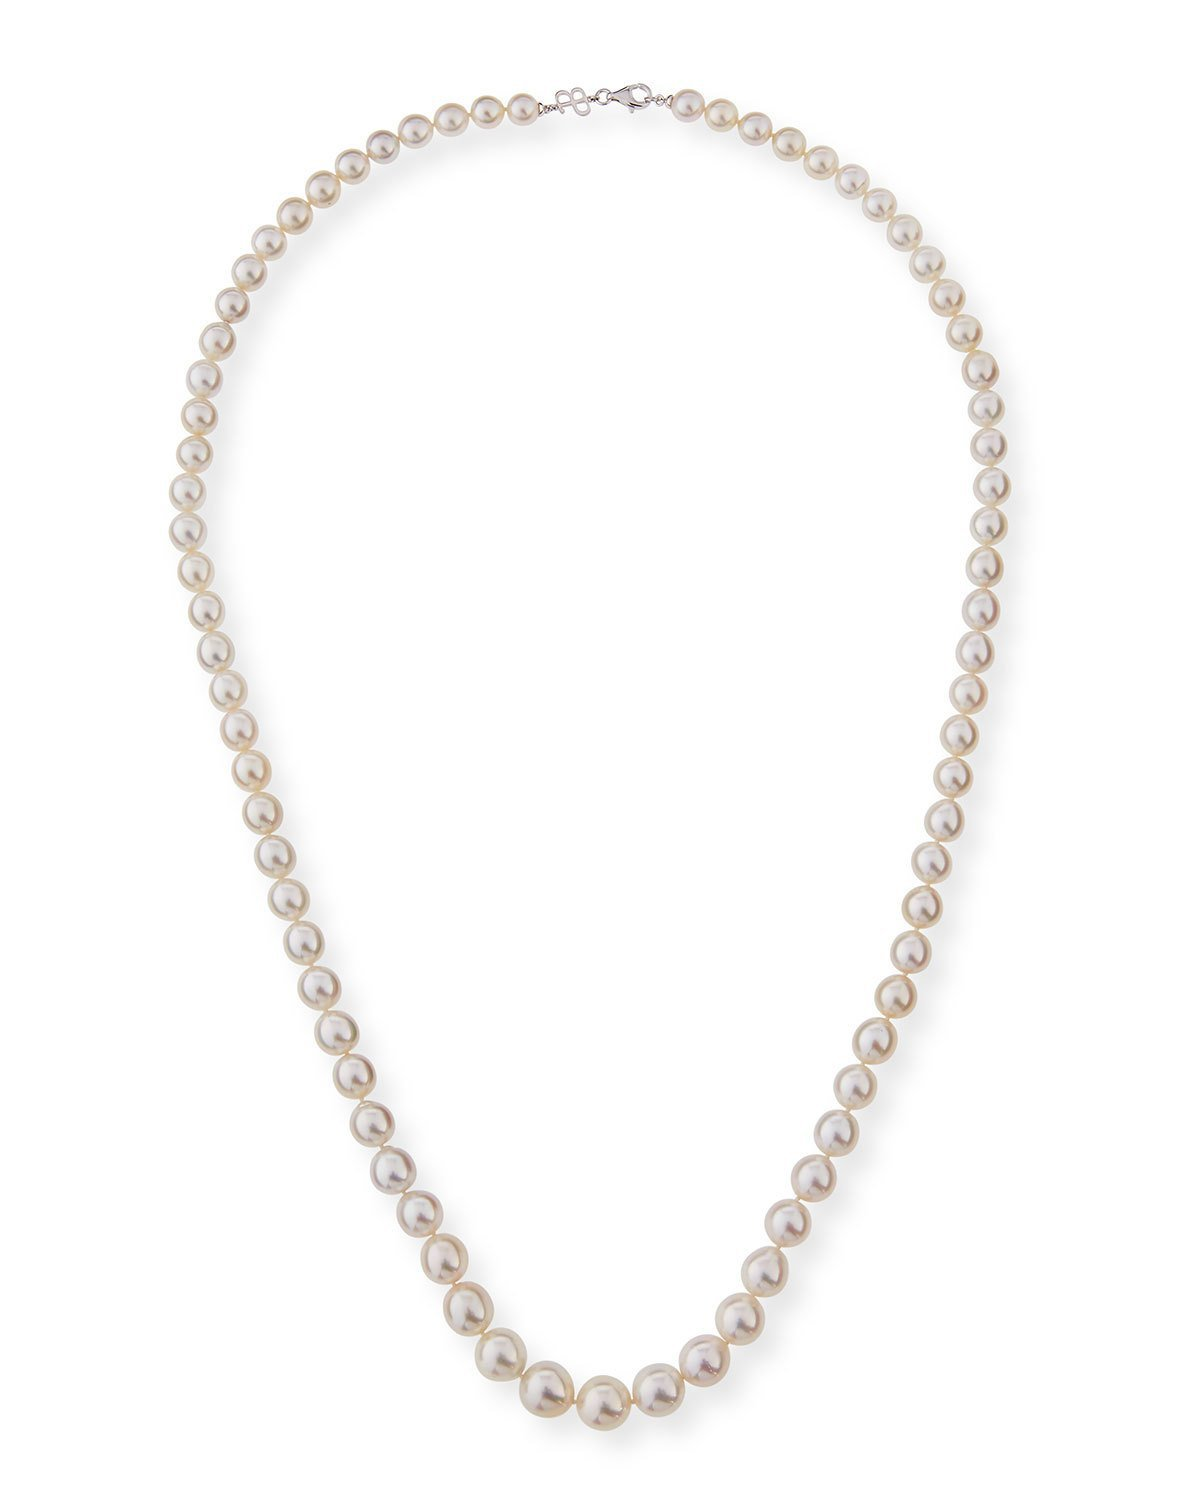 "Belpearl 36"" 13mm South Sea Pearl Necklace"